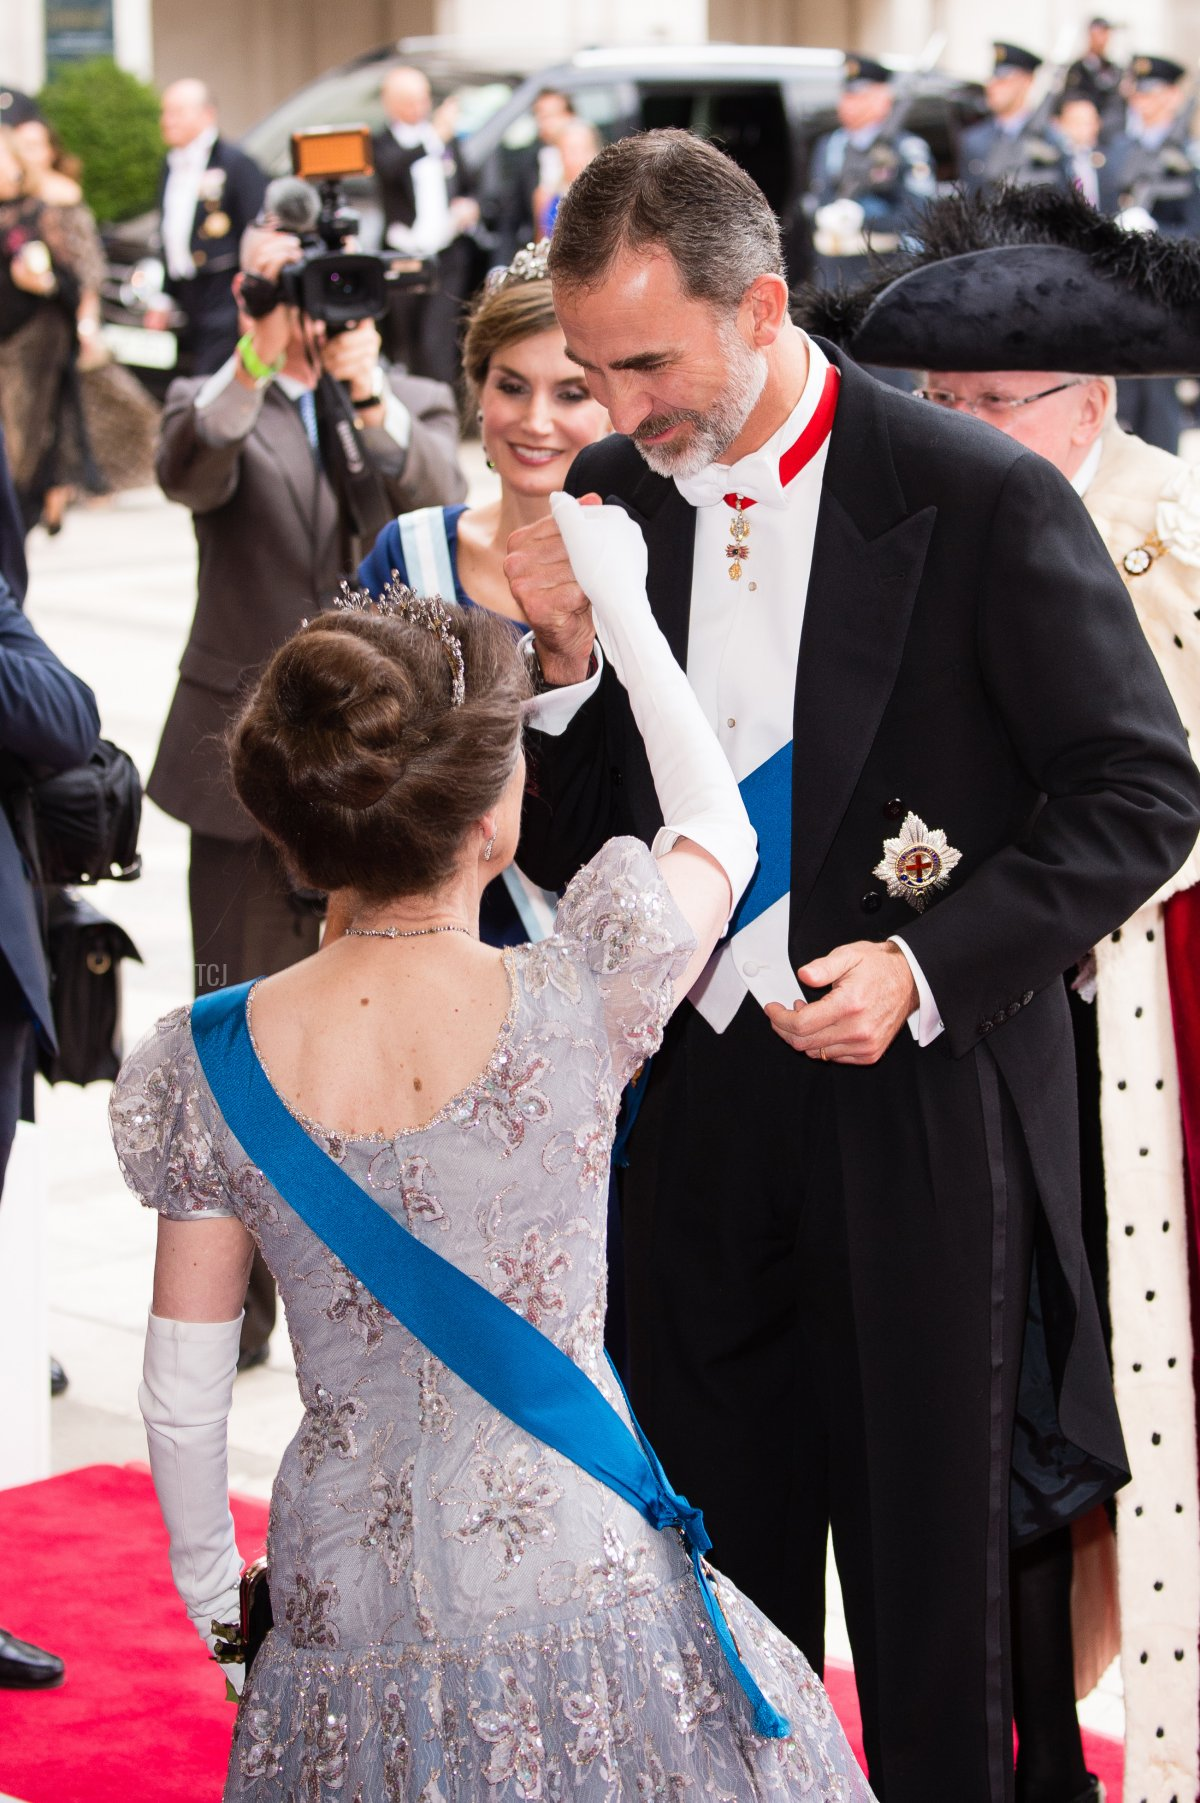 Princess Anne, Princess Royal greets King Felipe VI of Spain as they attend the Lord Mayor's Banquet at the Guildhall during a State visit by the King and Queen of Spain on July 13, 2017 in London, England